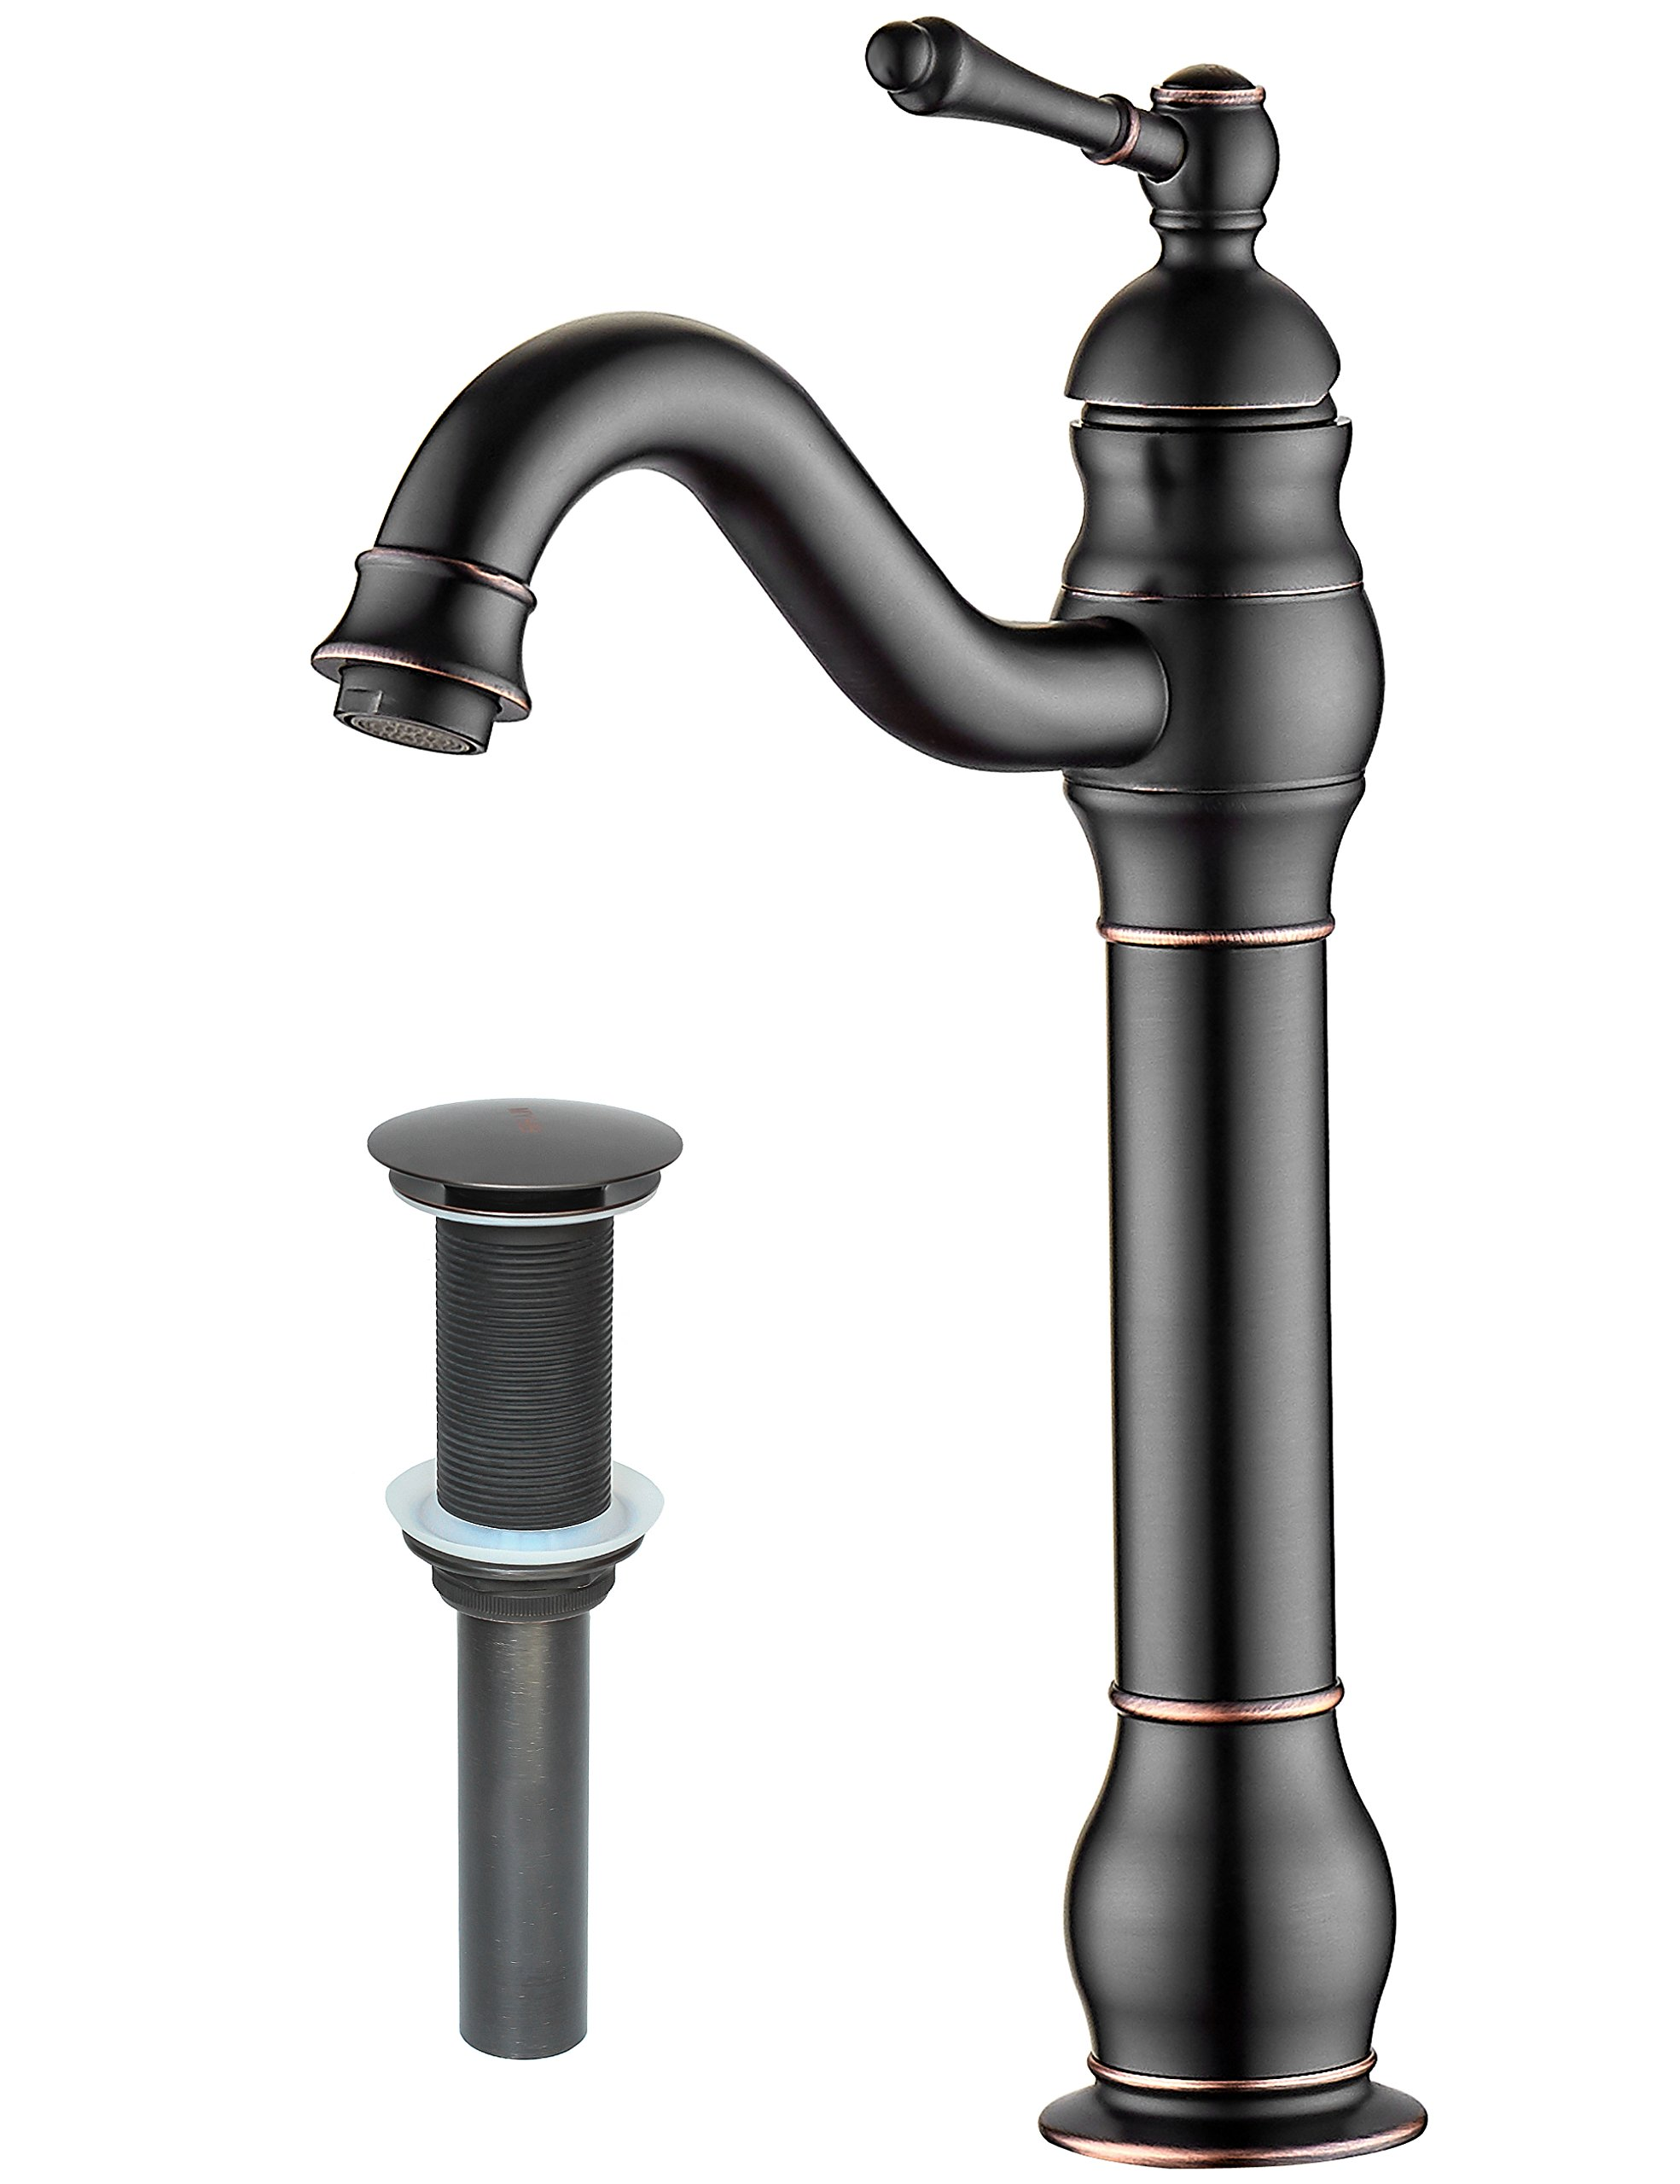 MYHB 360° Swivel Oil Rubbed Bronze Bathroom Vessel Sink Faucet with POP UP Drain Single Handle Lever Bowl Tap Mixer by MYHB